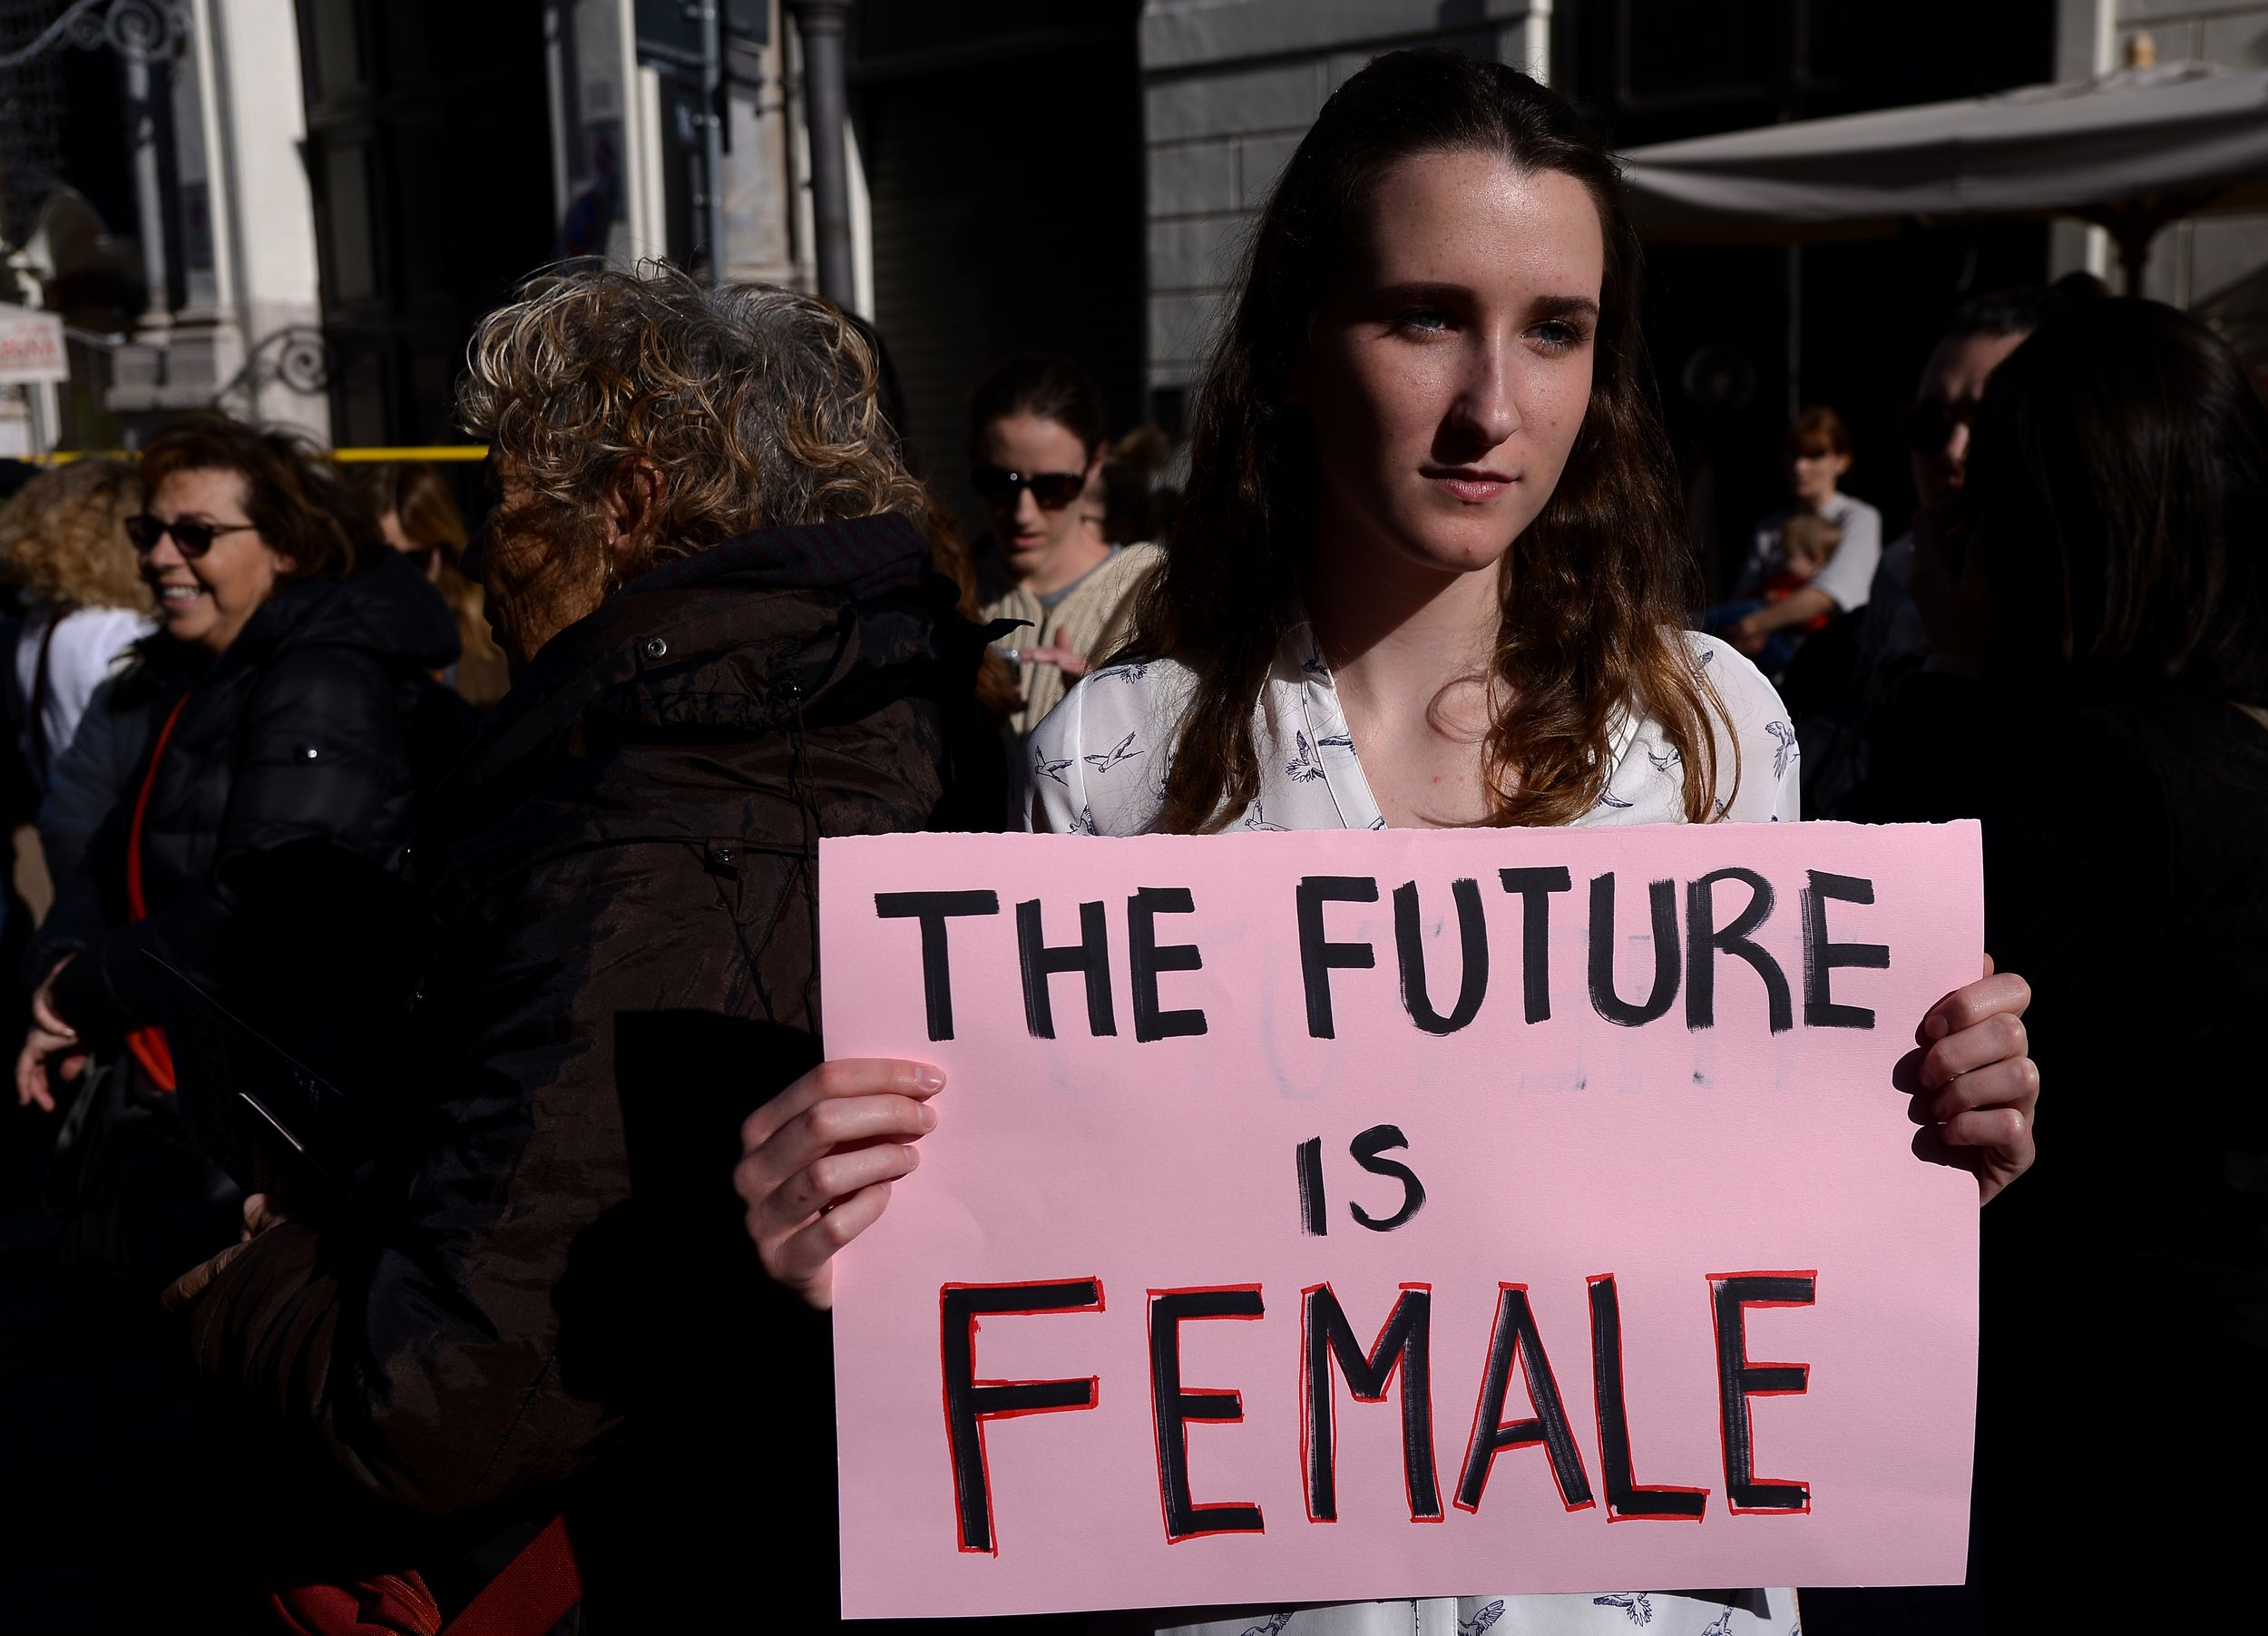 Women S March Aims To Harness Trump Opposition Womens March Women Womens Rights